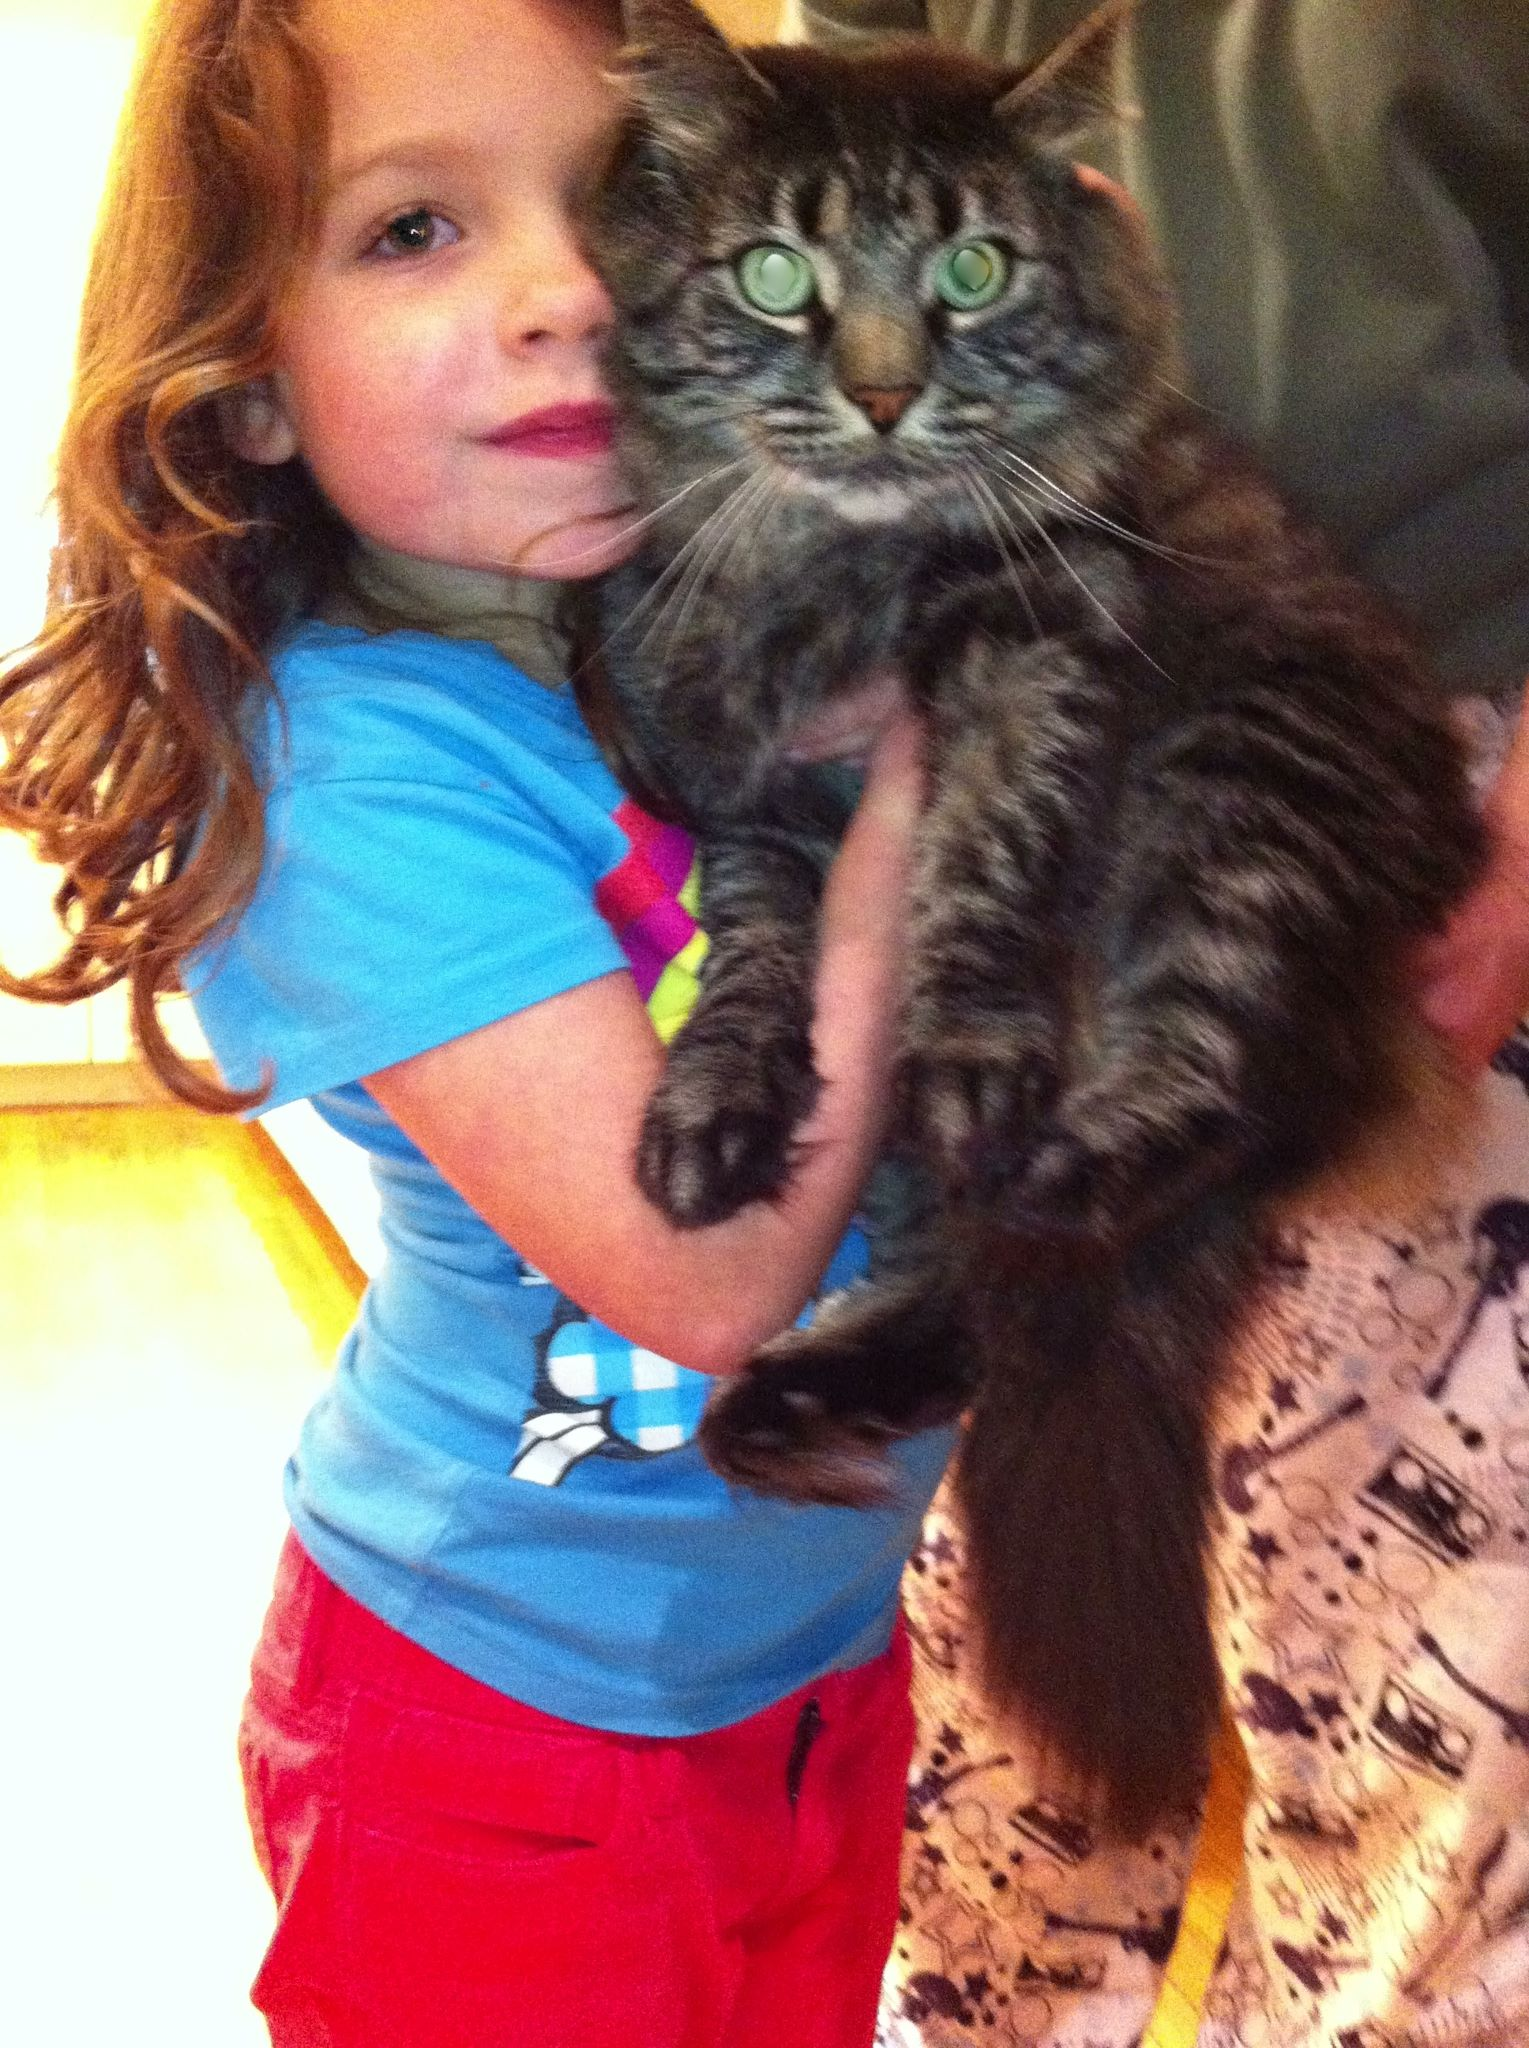 My daughter Lillian (the one on the left) with our resident Maine Coon, Teddy (the fur ball on the right)